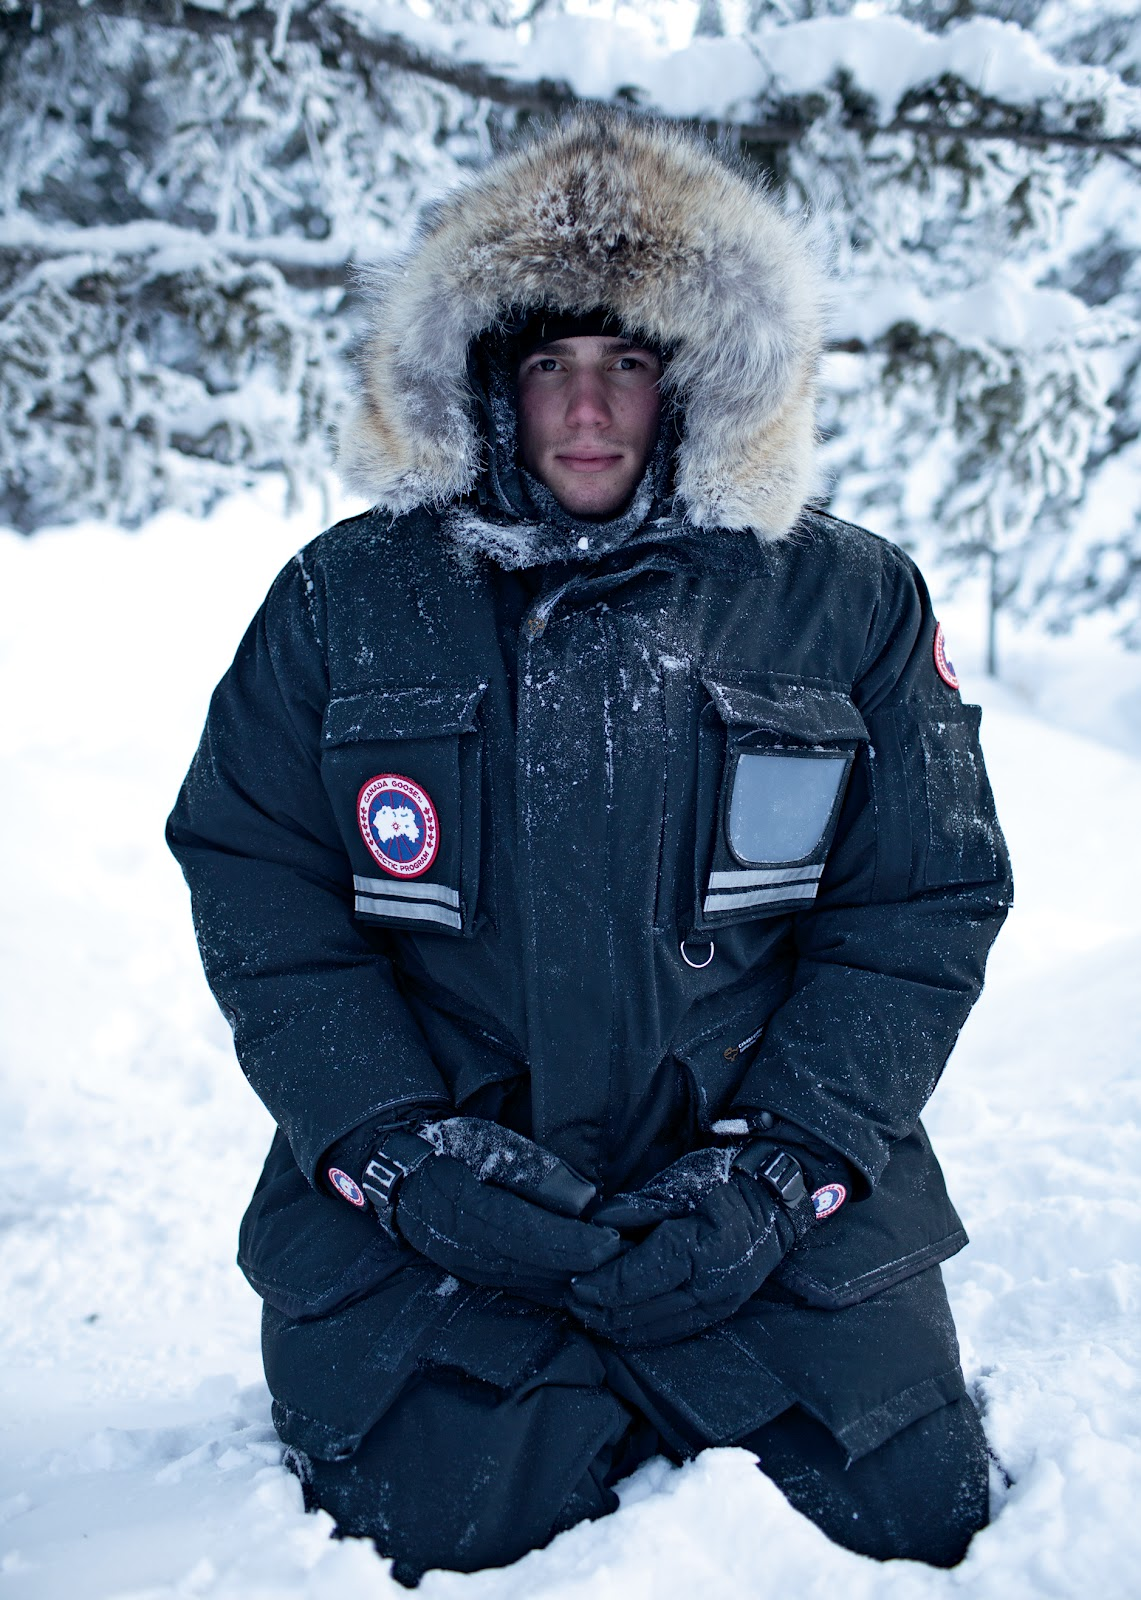 14 Oz Berlin Blog Canada Goose Gt Gt Gt Brave The Elements